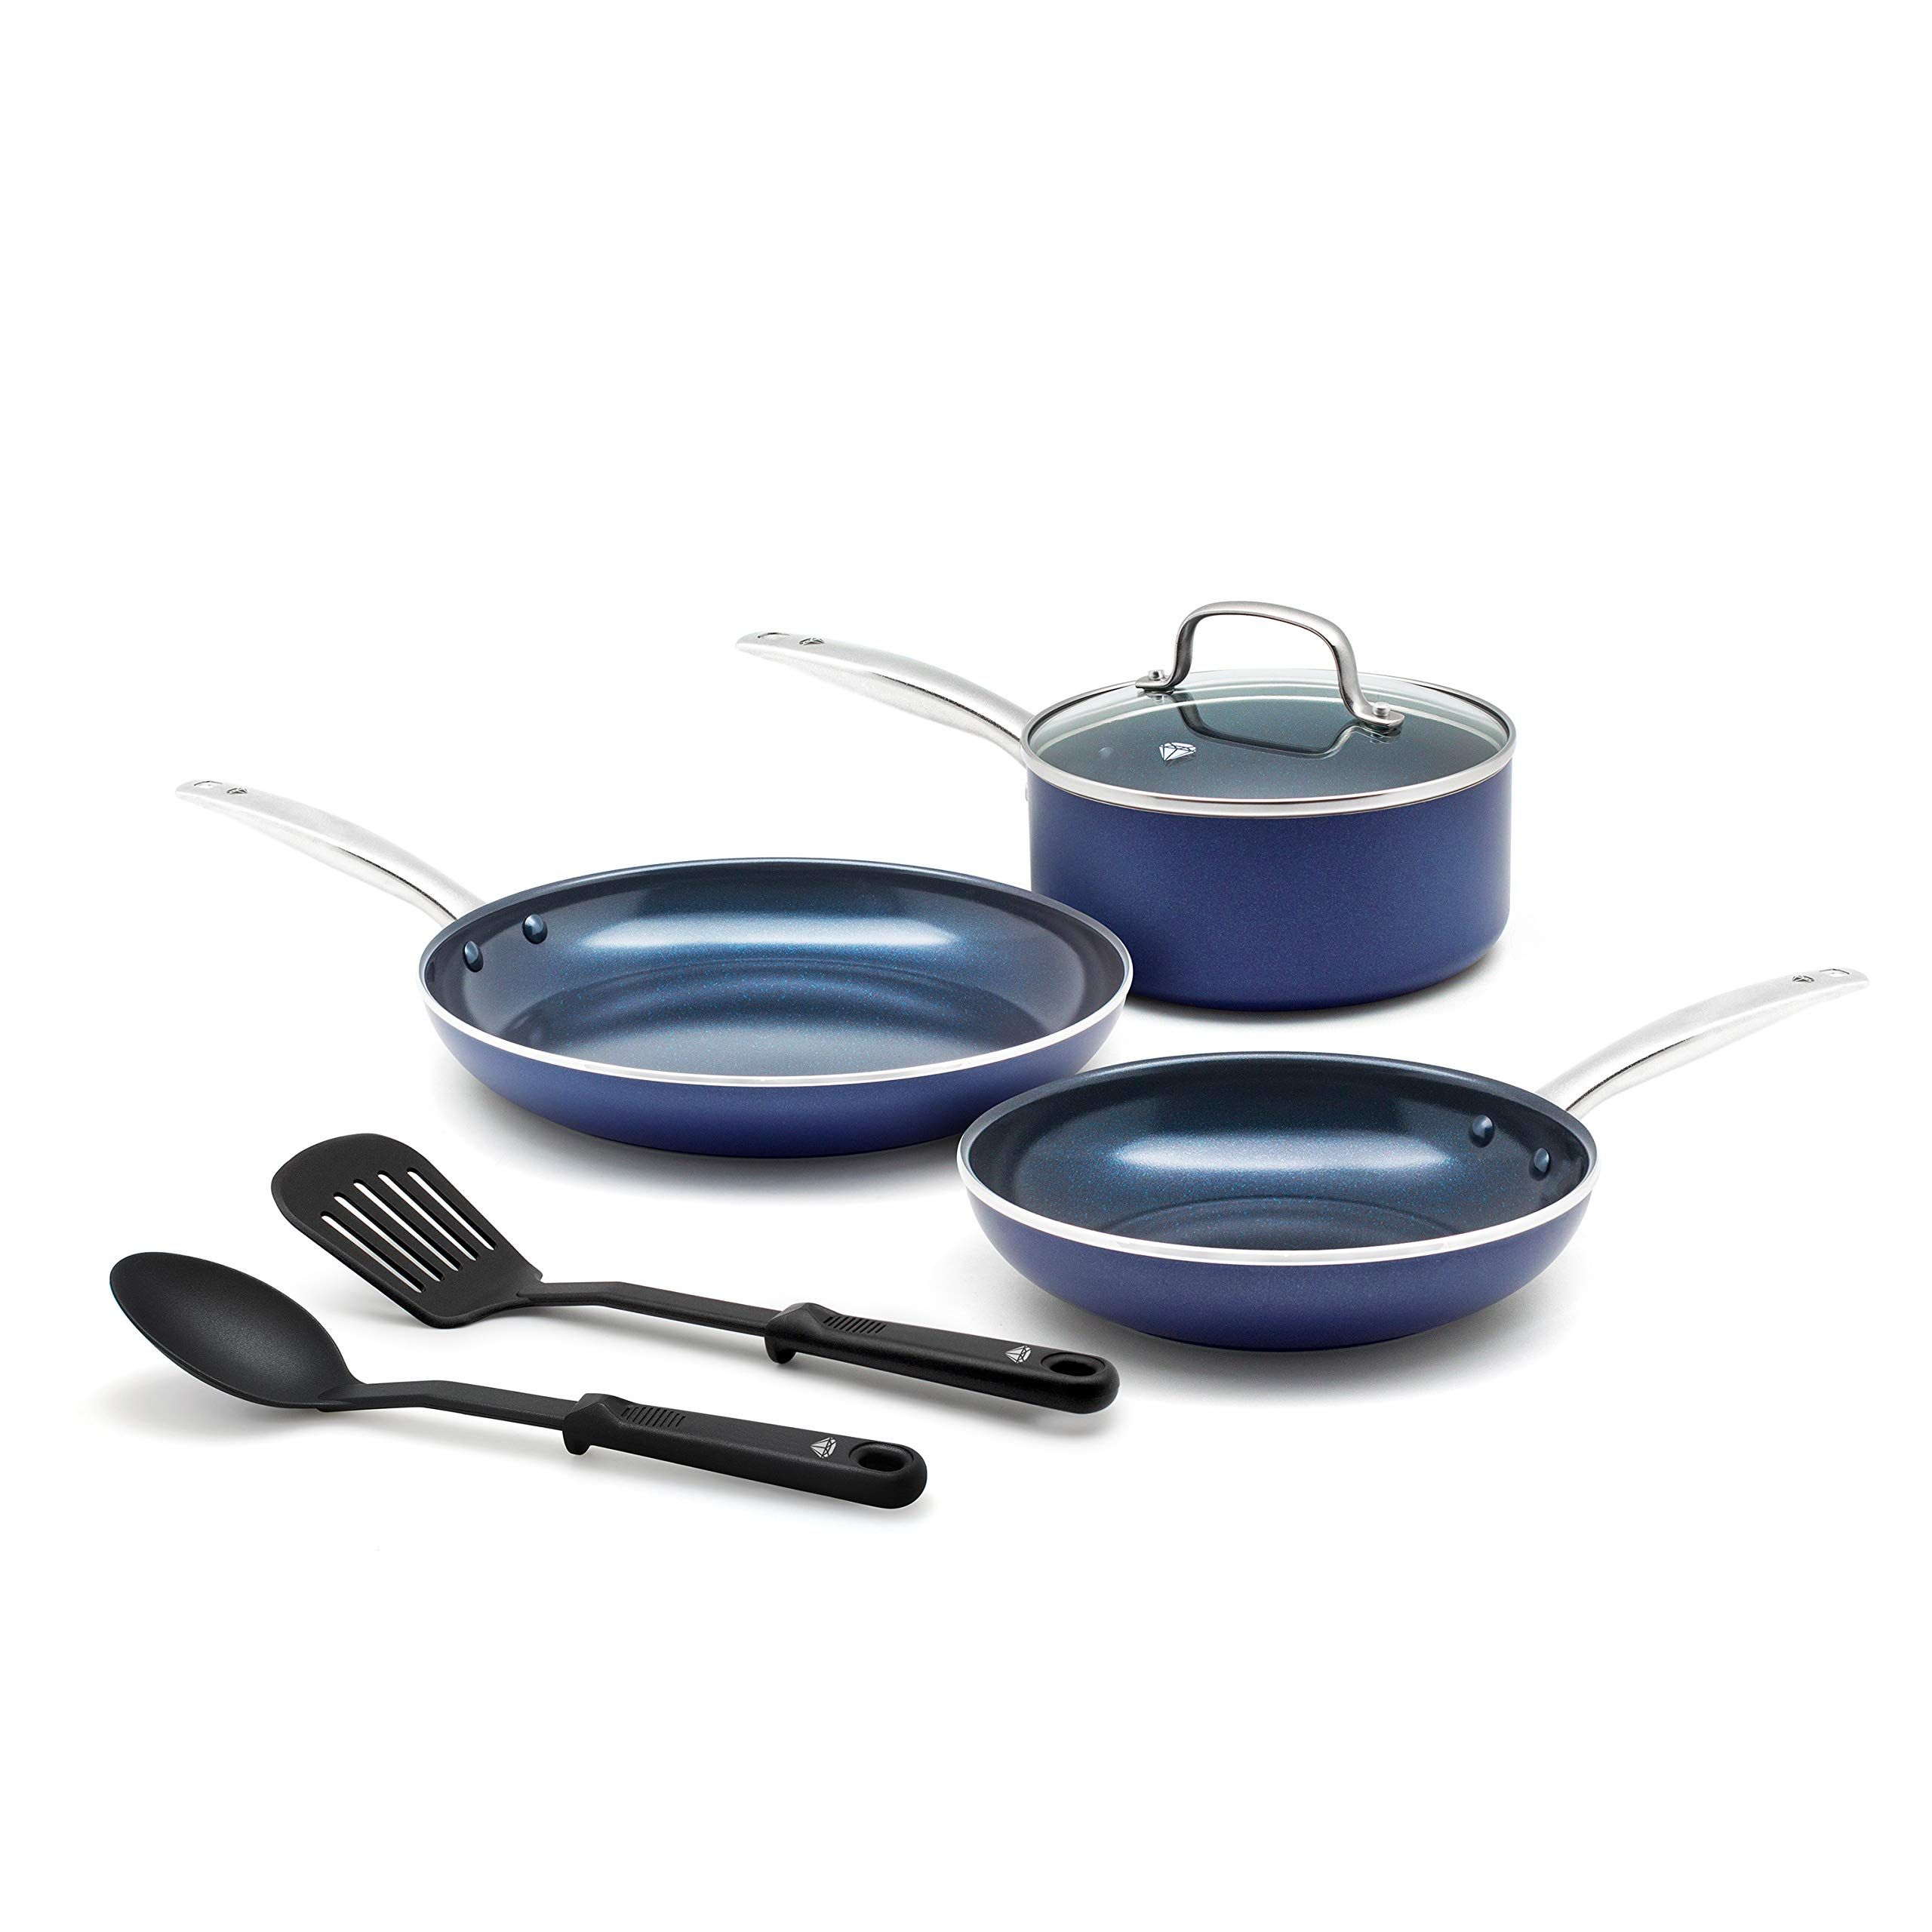 Healthy Pan Grilled Barbecue Shrimp Gastrocoach Cookware Set Ceramic Nonstick Cookware Ceramic Cookware Set